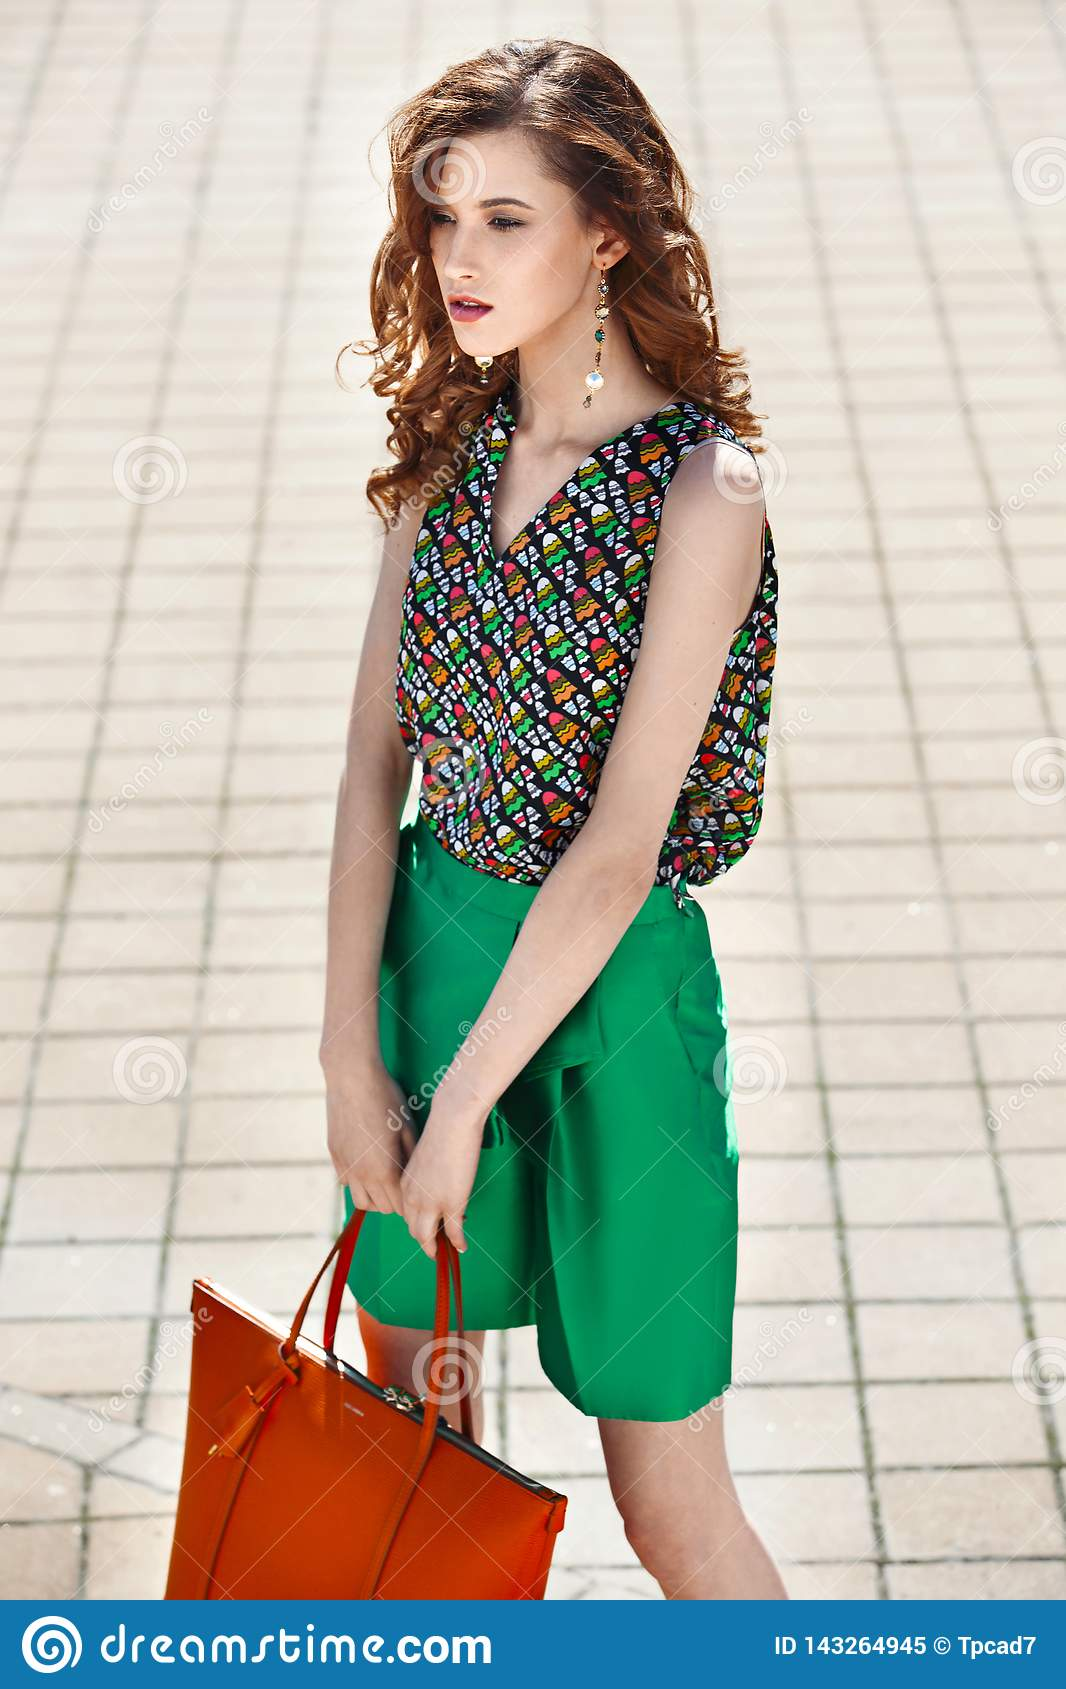 Beautiful women dressed in stylish green shorts and a bright top holding orange bag is walking in the city street on a